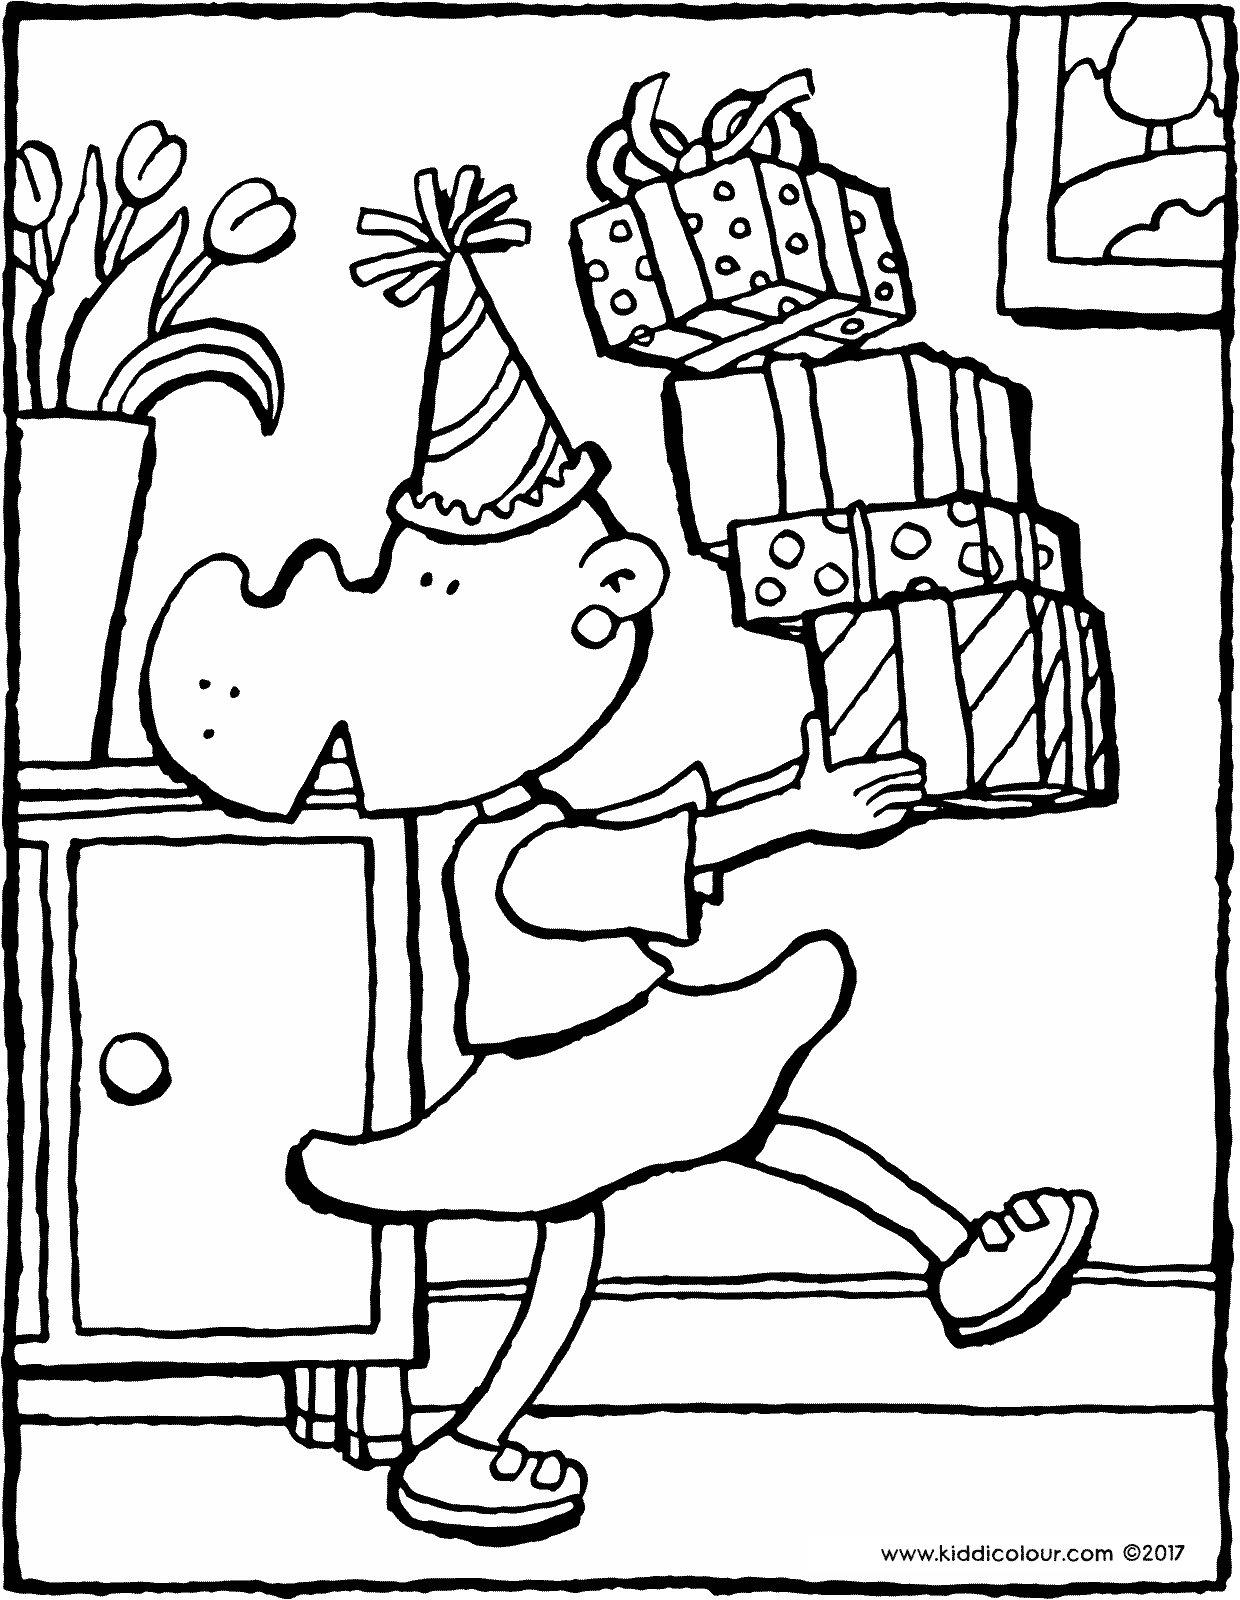 a pile of presents colouring page drawing picture 01V